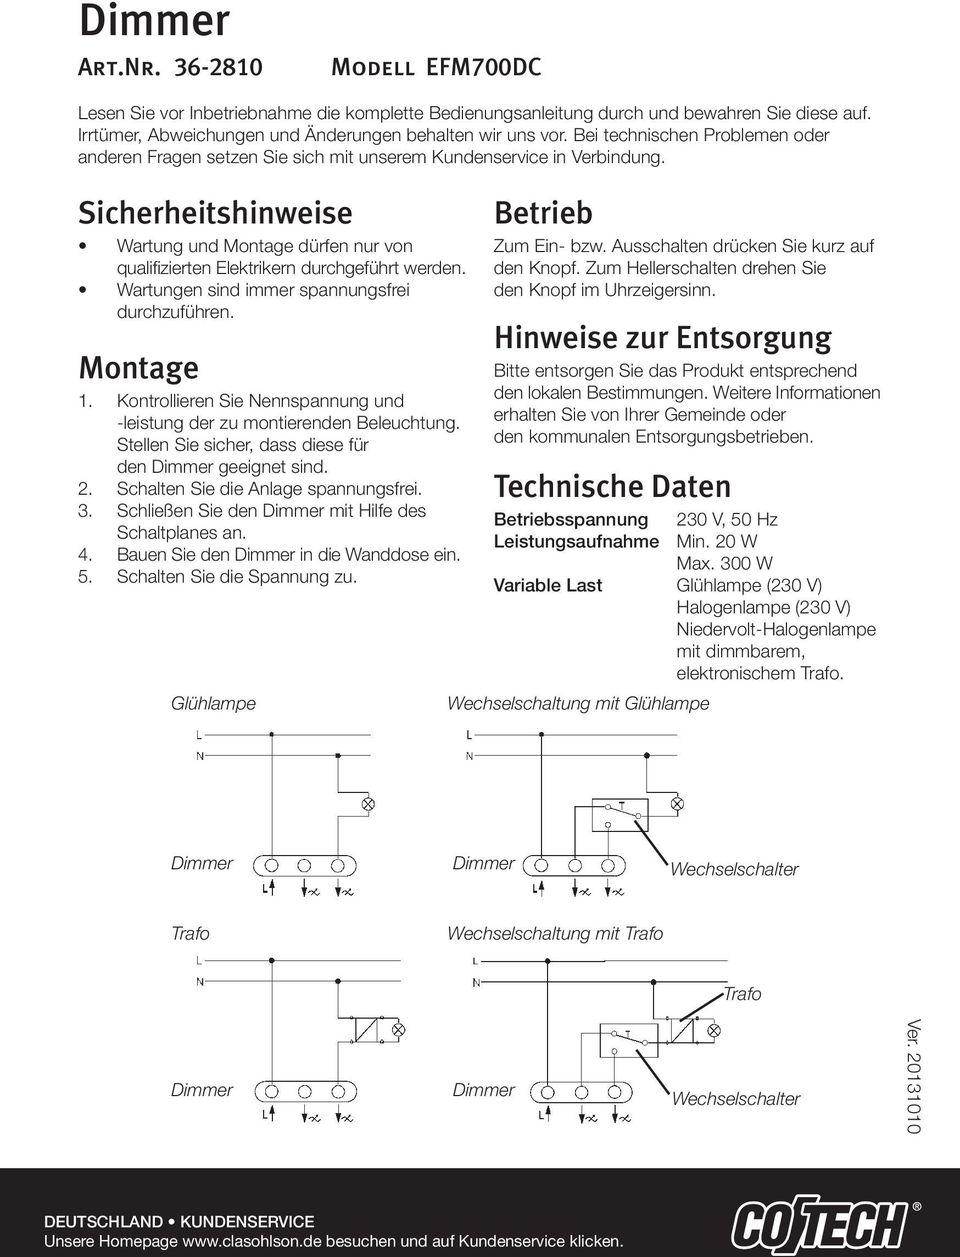 Dimmer Switch Operating Instructions A Short Press On The Dimmer